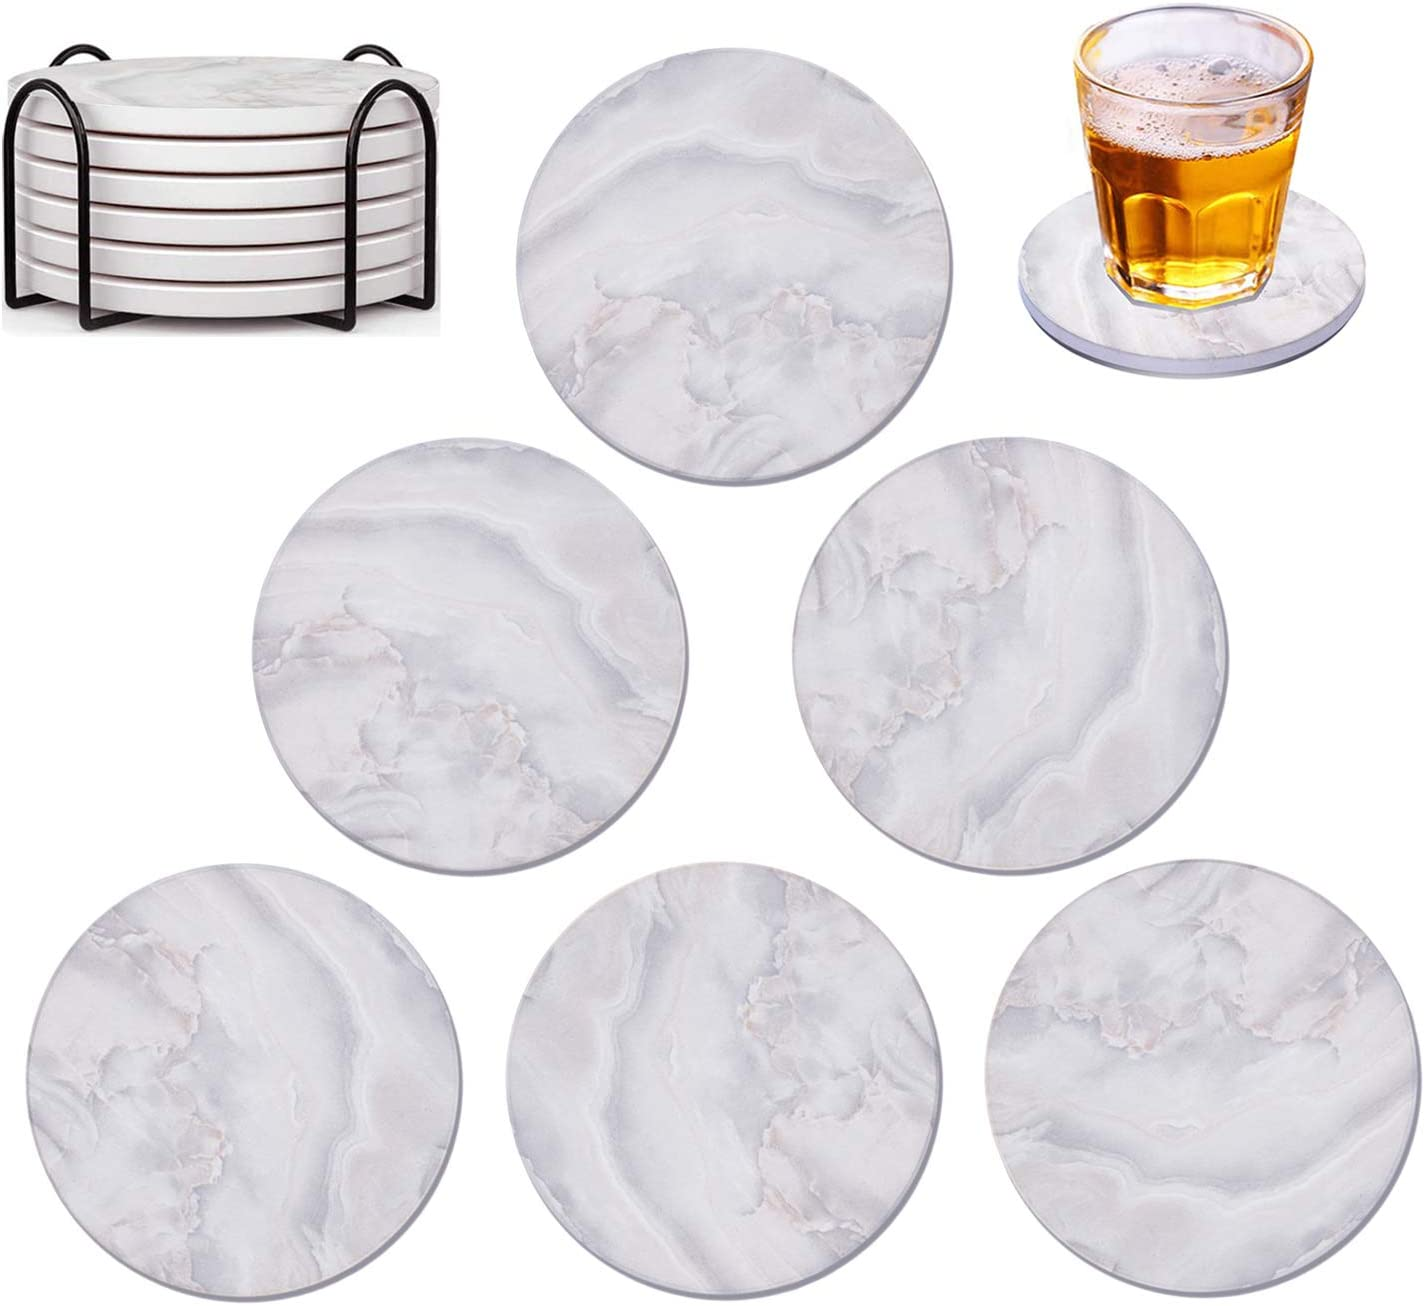 Coasters for Drinks with Holder, KilYn Absorbent Coaster Sets of 6, Marble Ceramic Coaster with Cork Back for Home Decor, Tabletop Protection, Great Gifts for Birthday Party Bar Housewarming